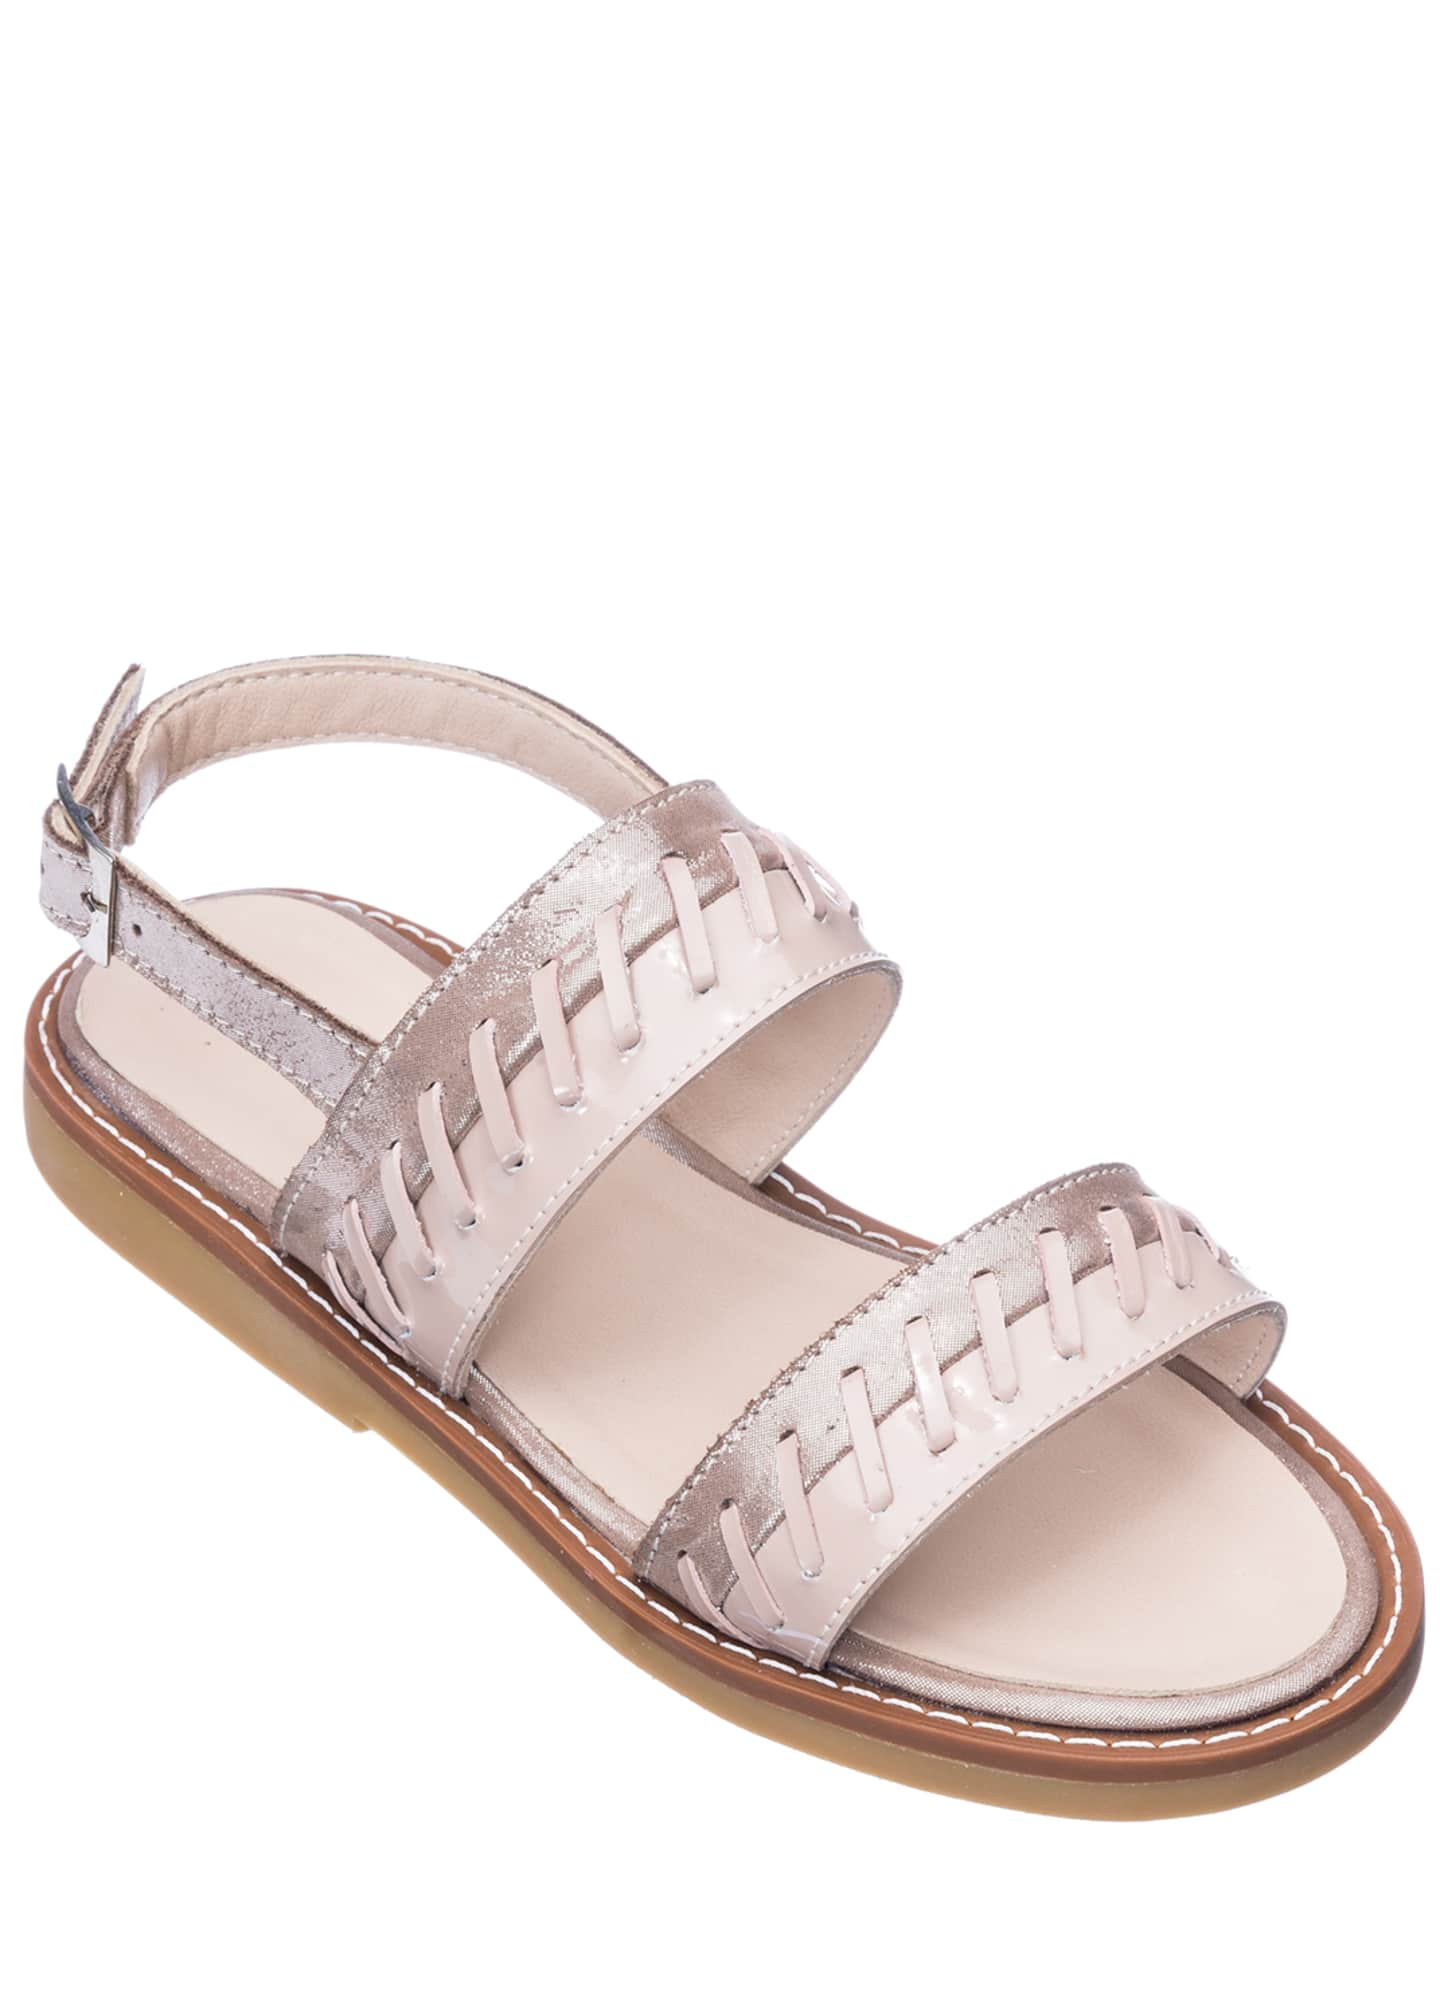 Elephantito Girls' Larissa Stitched Leather Sandals, Toddler/Kids